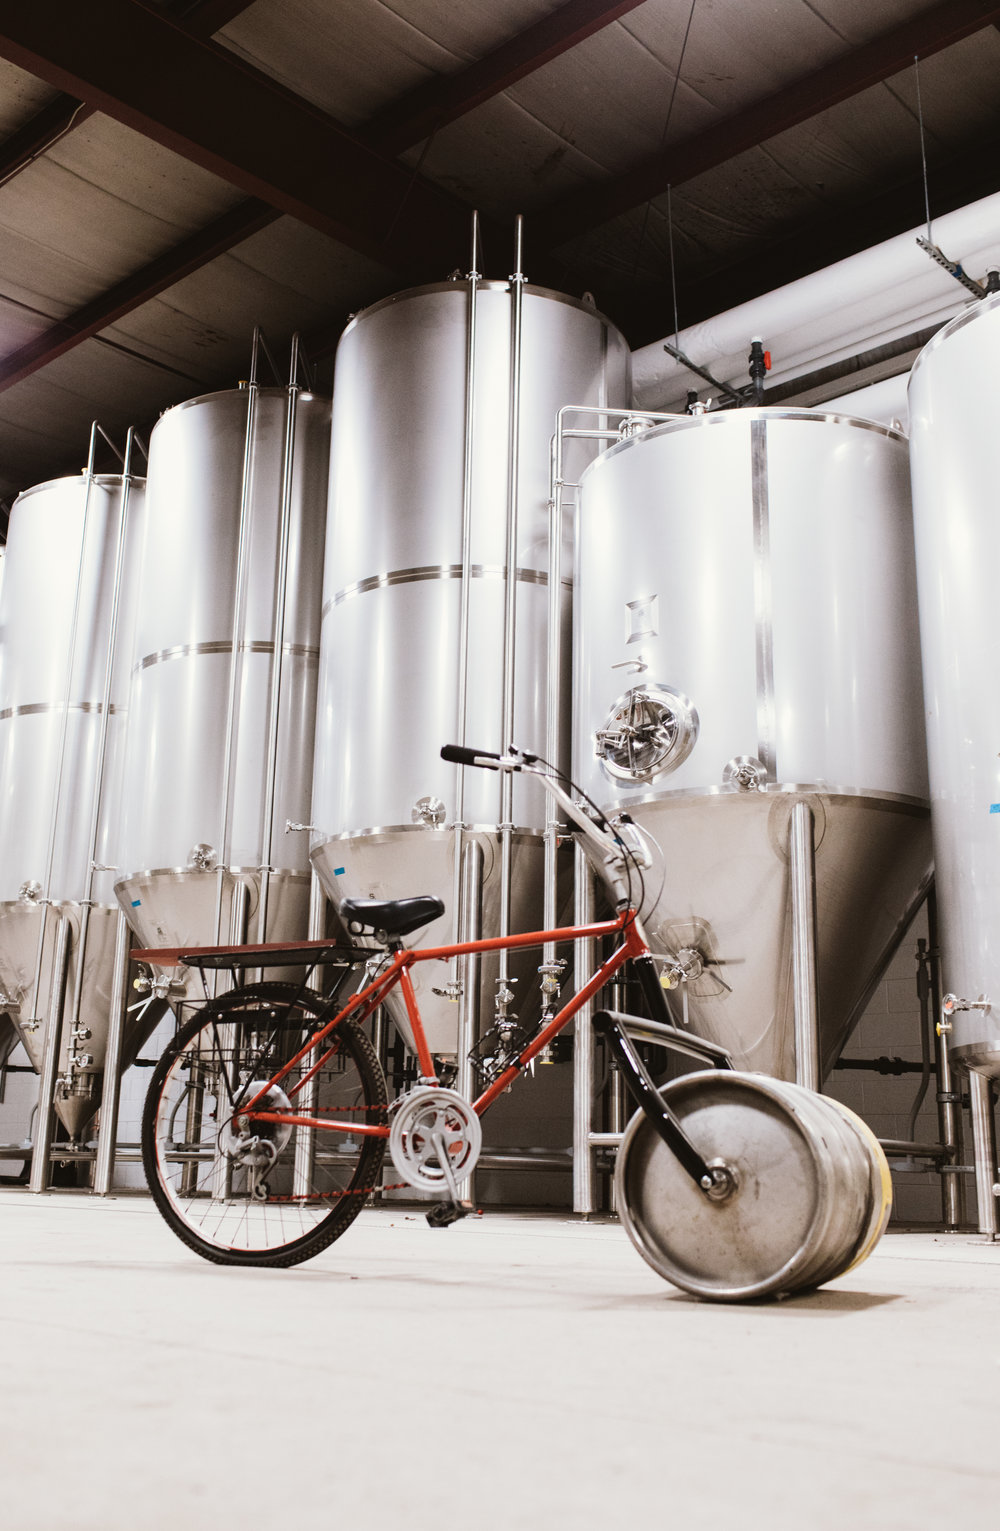 Keg Bike 3 Sheeps Brewing Lifestyle Photography The Finches Chicago